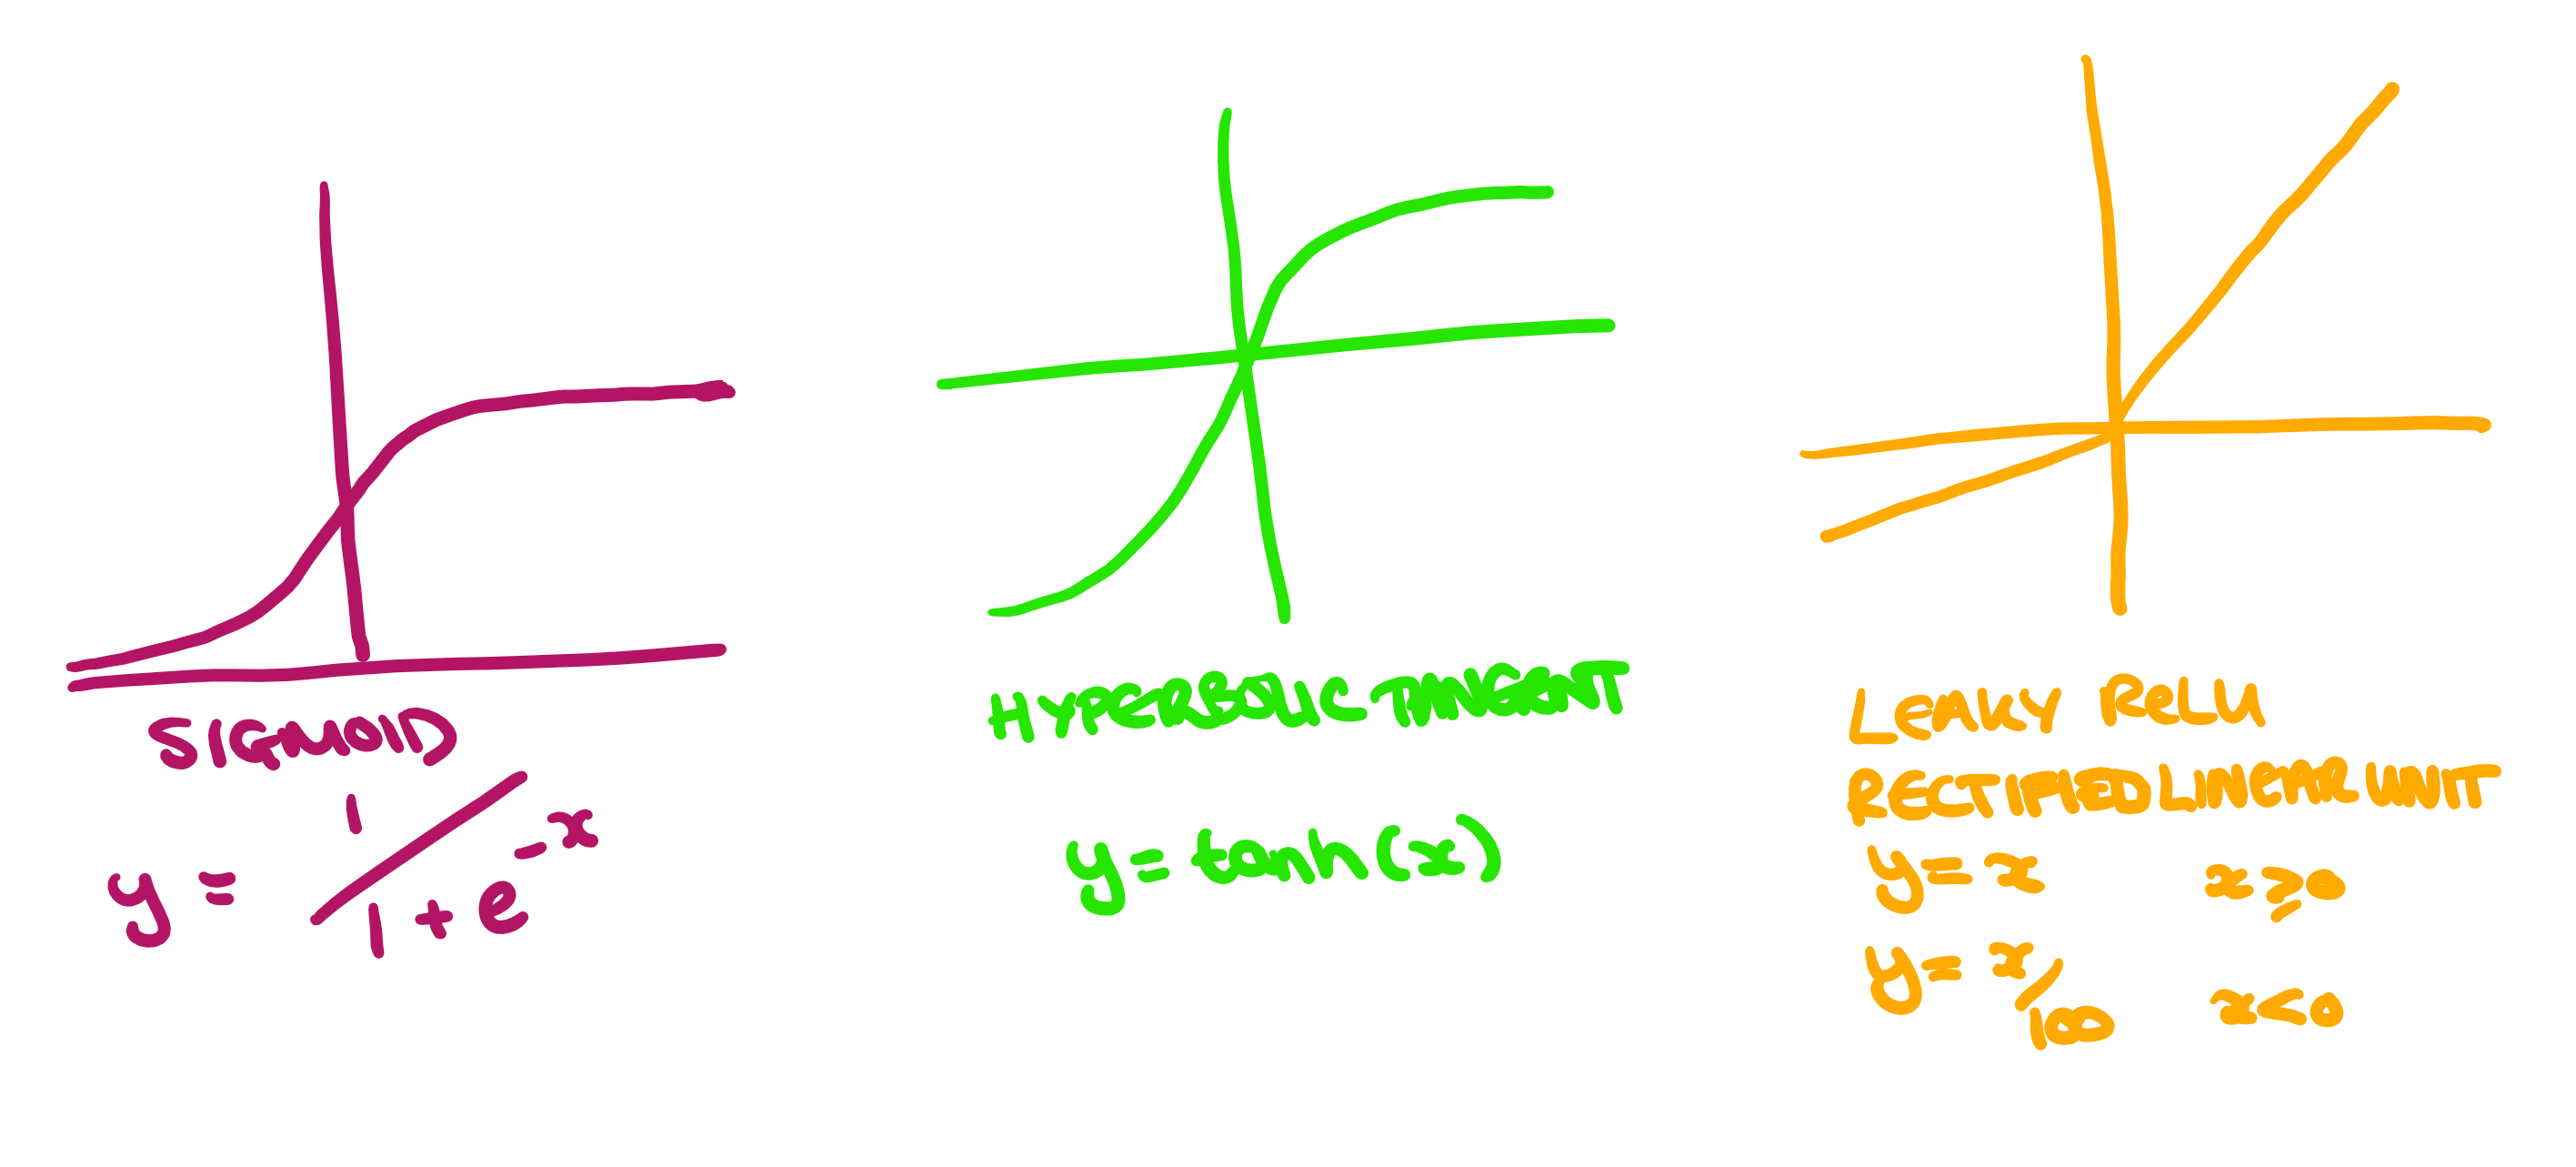 Examples of sigmoid, hyperbolic tangest and leaky reLU graphs.